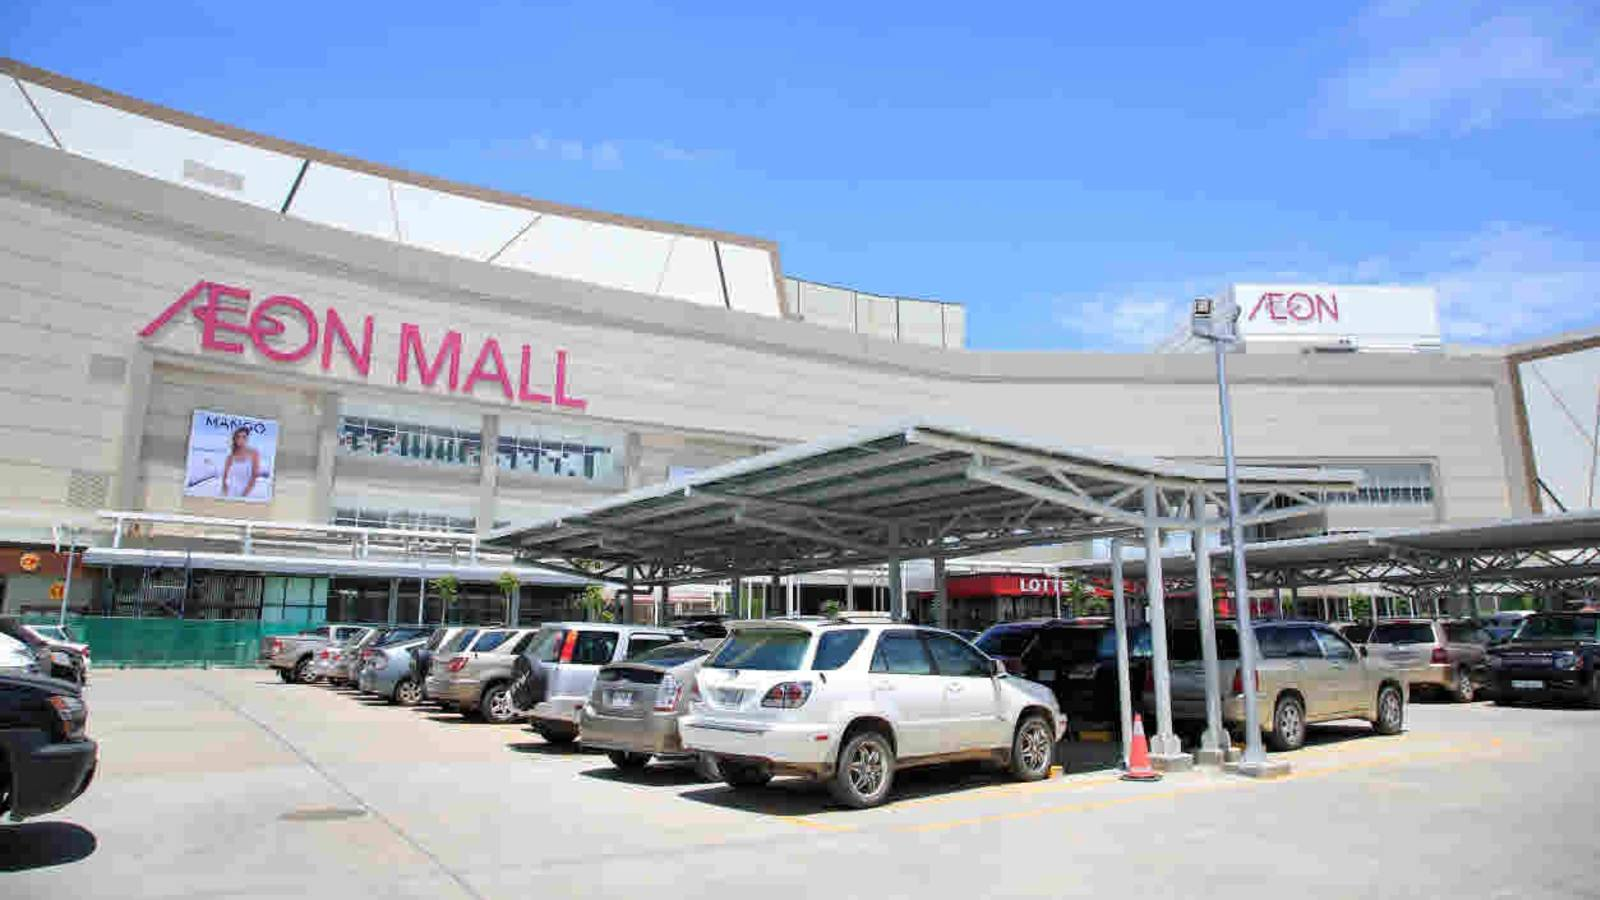 Aeon brings the modern mall to Cambodia - Nikkei Asian Review